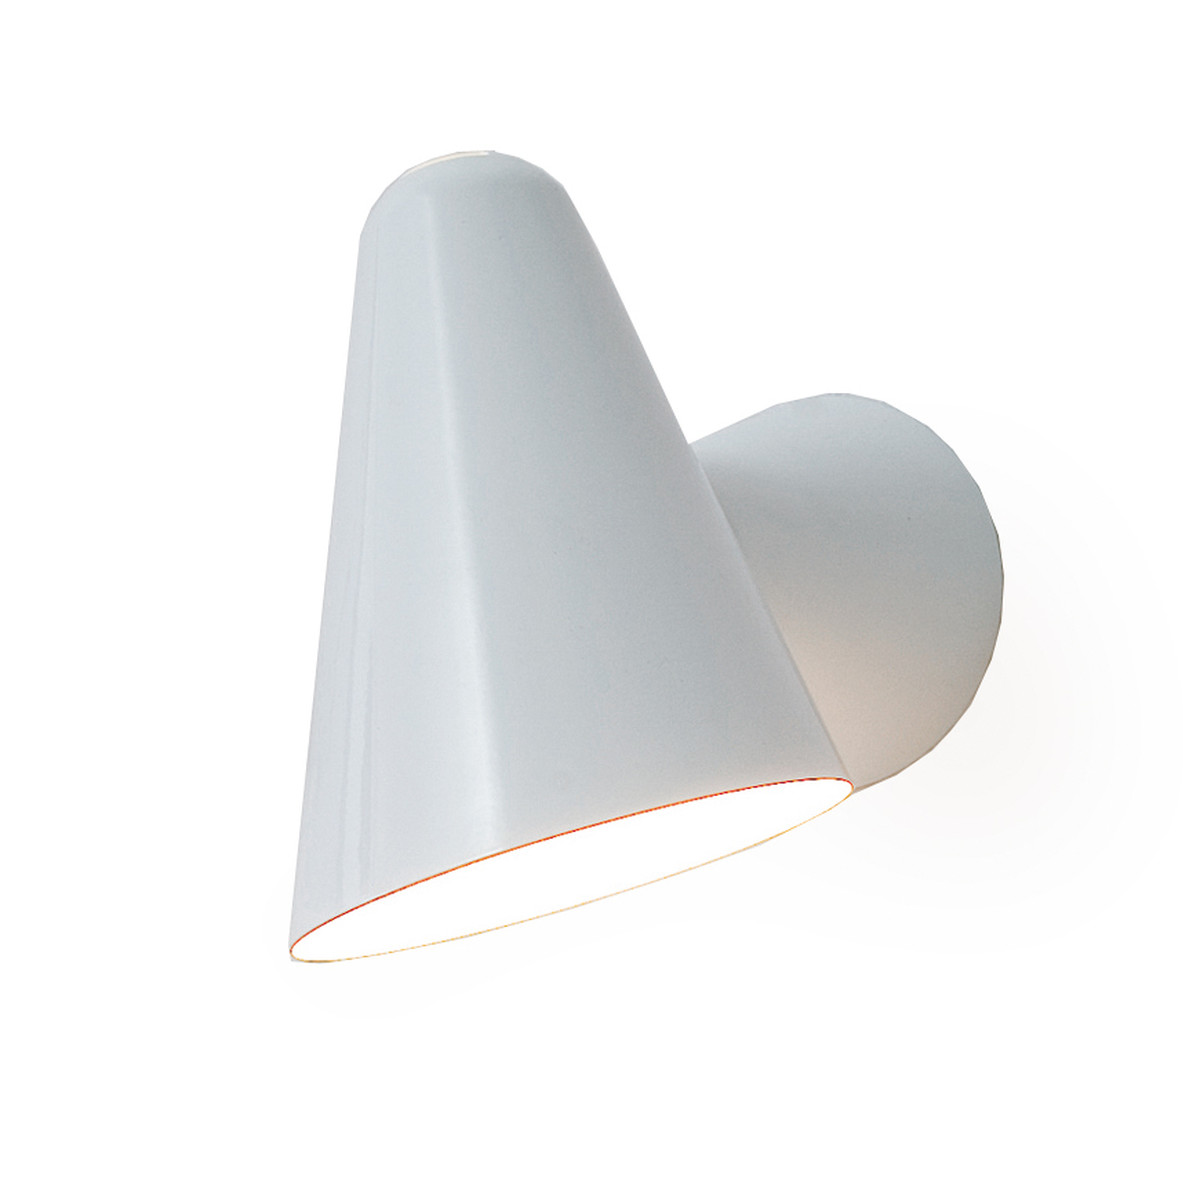 DON CAMILLO wall lamp